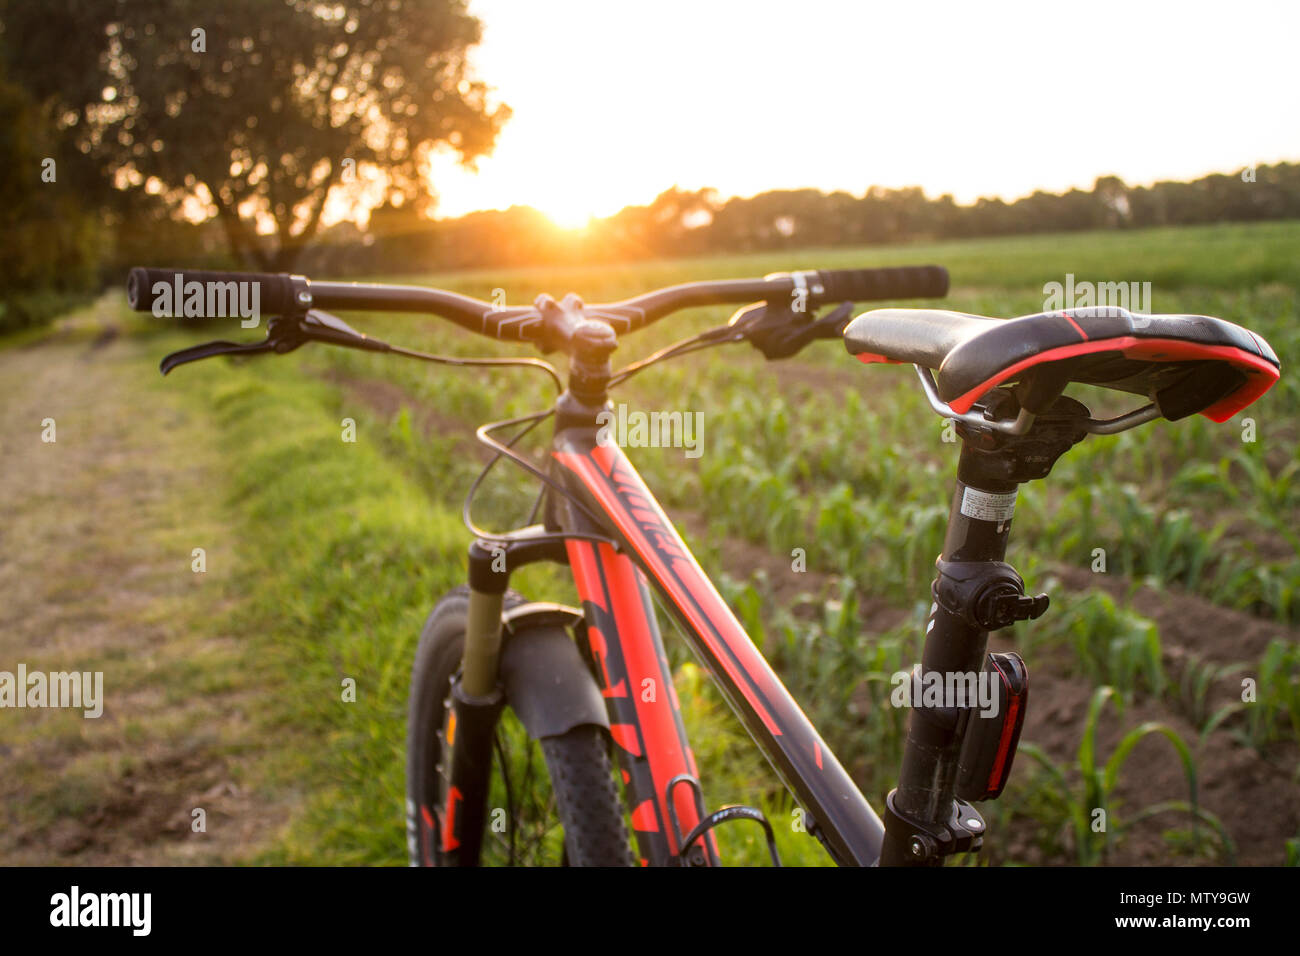 Tlaxcala, Mexico - May 27.2018. Giant Manufacturing Co. Ltd. (commonly known as Giant) is a Taiwanese bicycle manufacturer that is recognized as the w - Stock Image